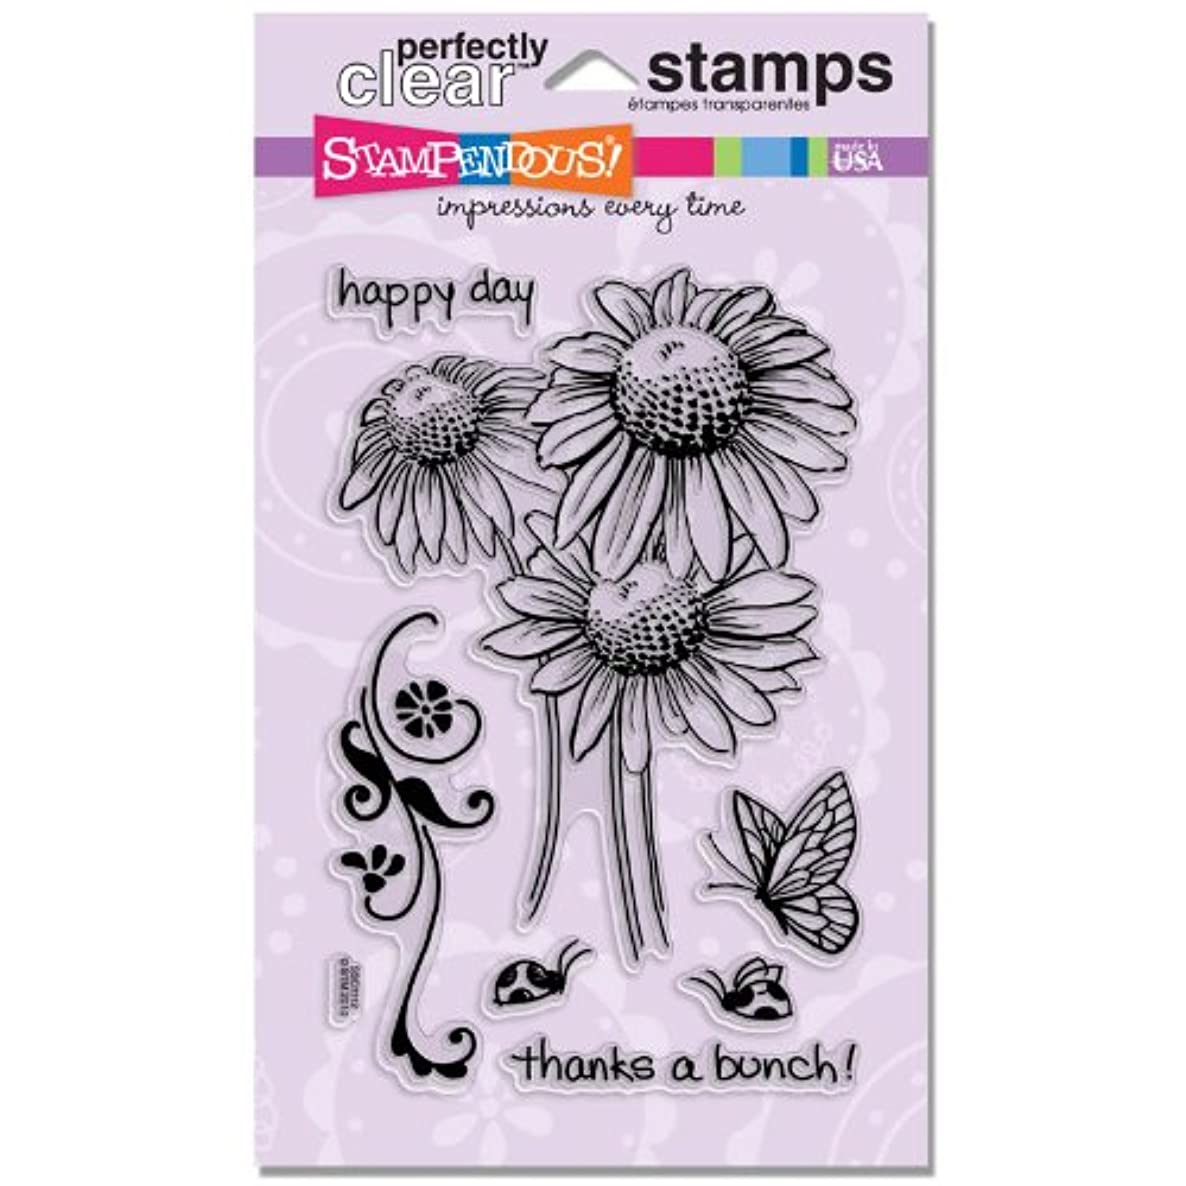 STAMPENDOUS SSC1112 Perfectly Clear Stamp, Daisy Thanks